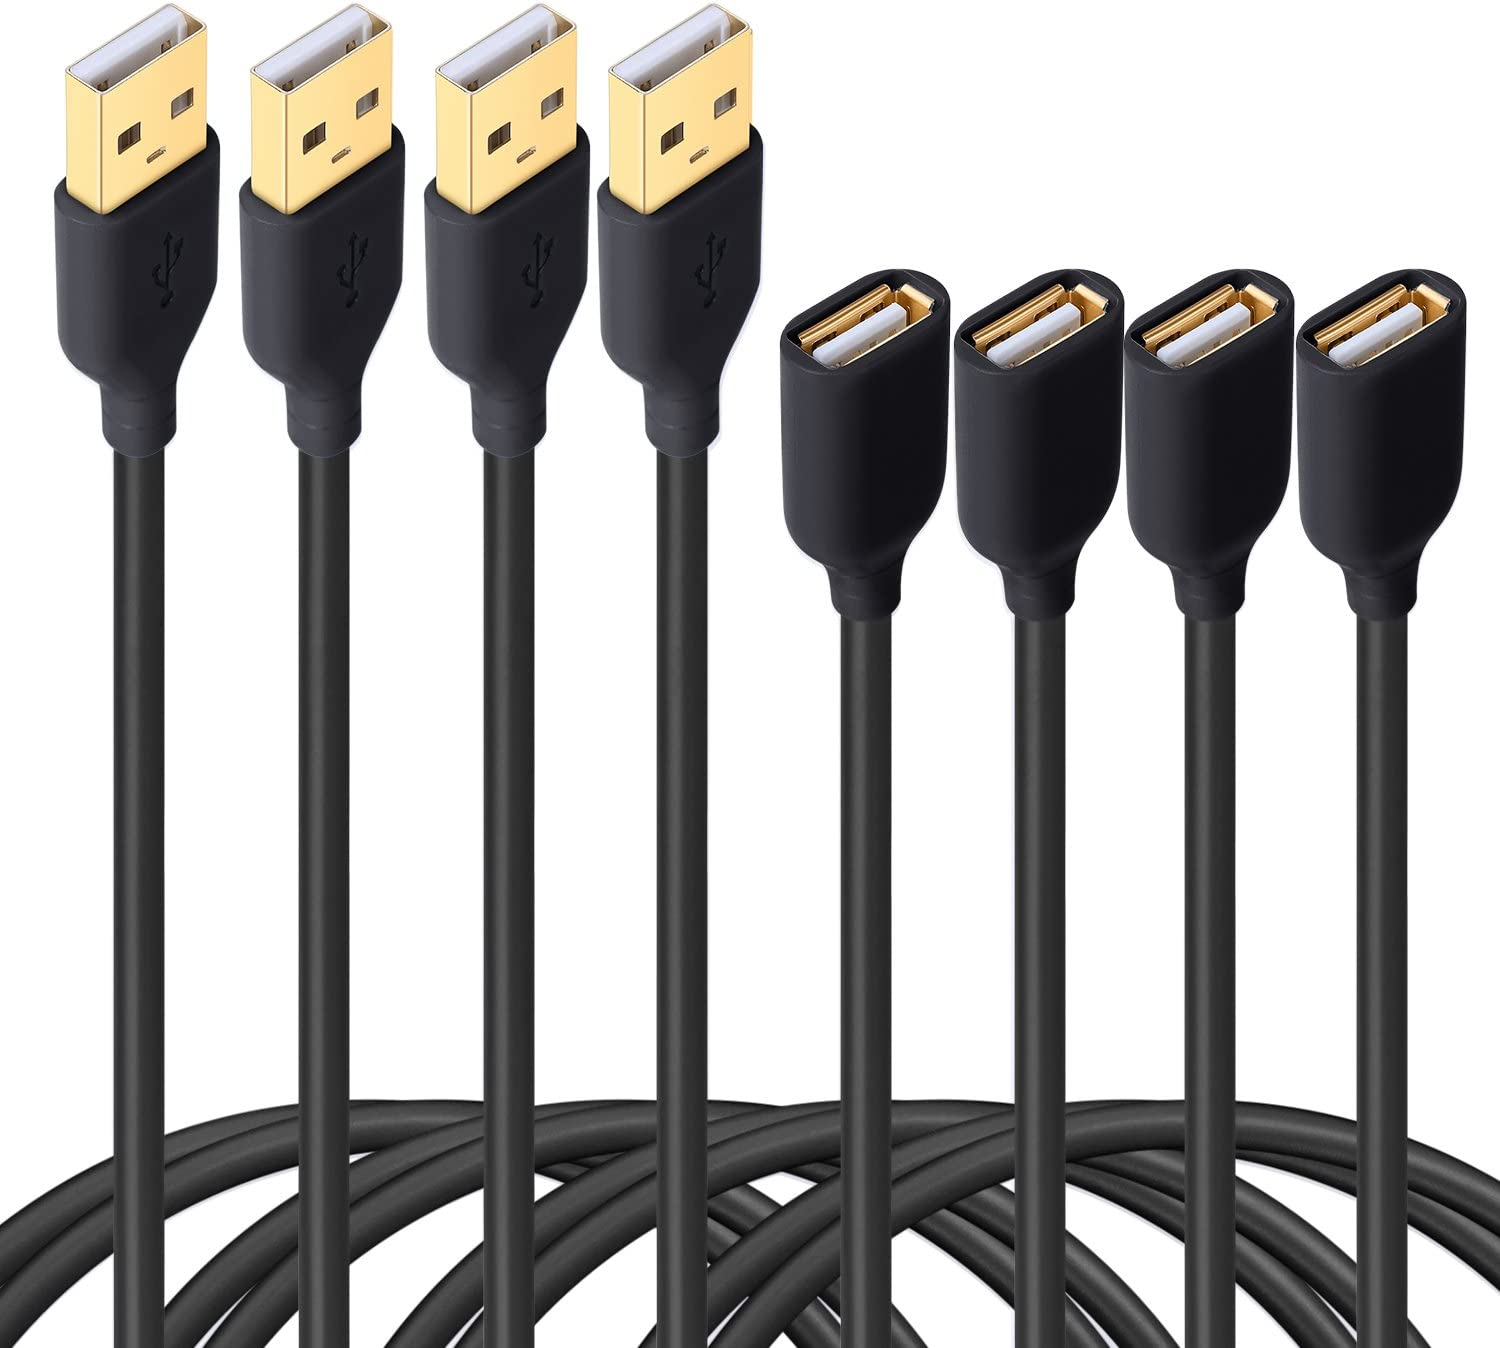 Besgoods 4-Pack - Durable 6ft/2m USB 2.0 Extension Cable A Male to A Female Cable Extender Cord for Keyboard, Mouse, Printer - Black